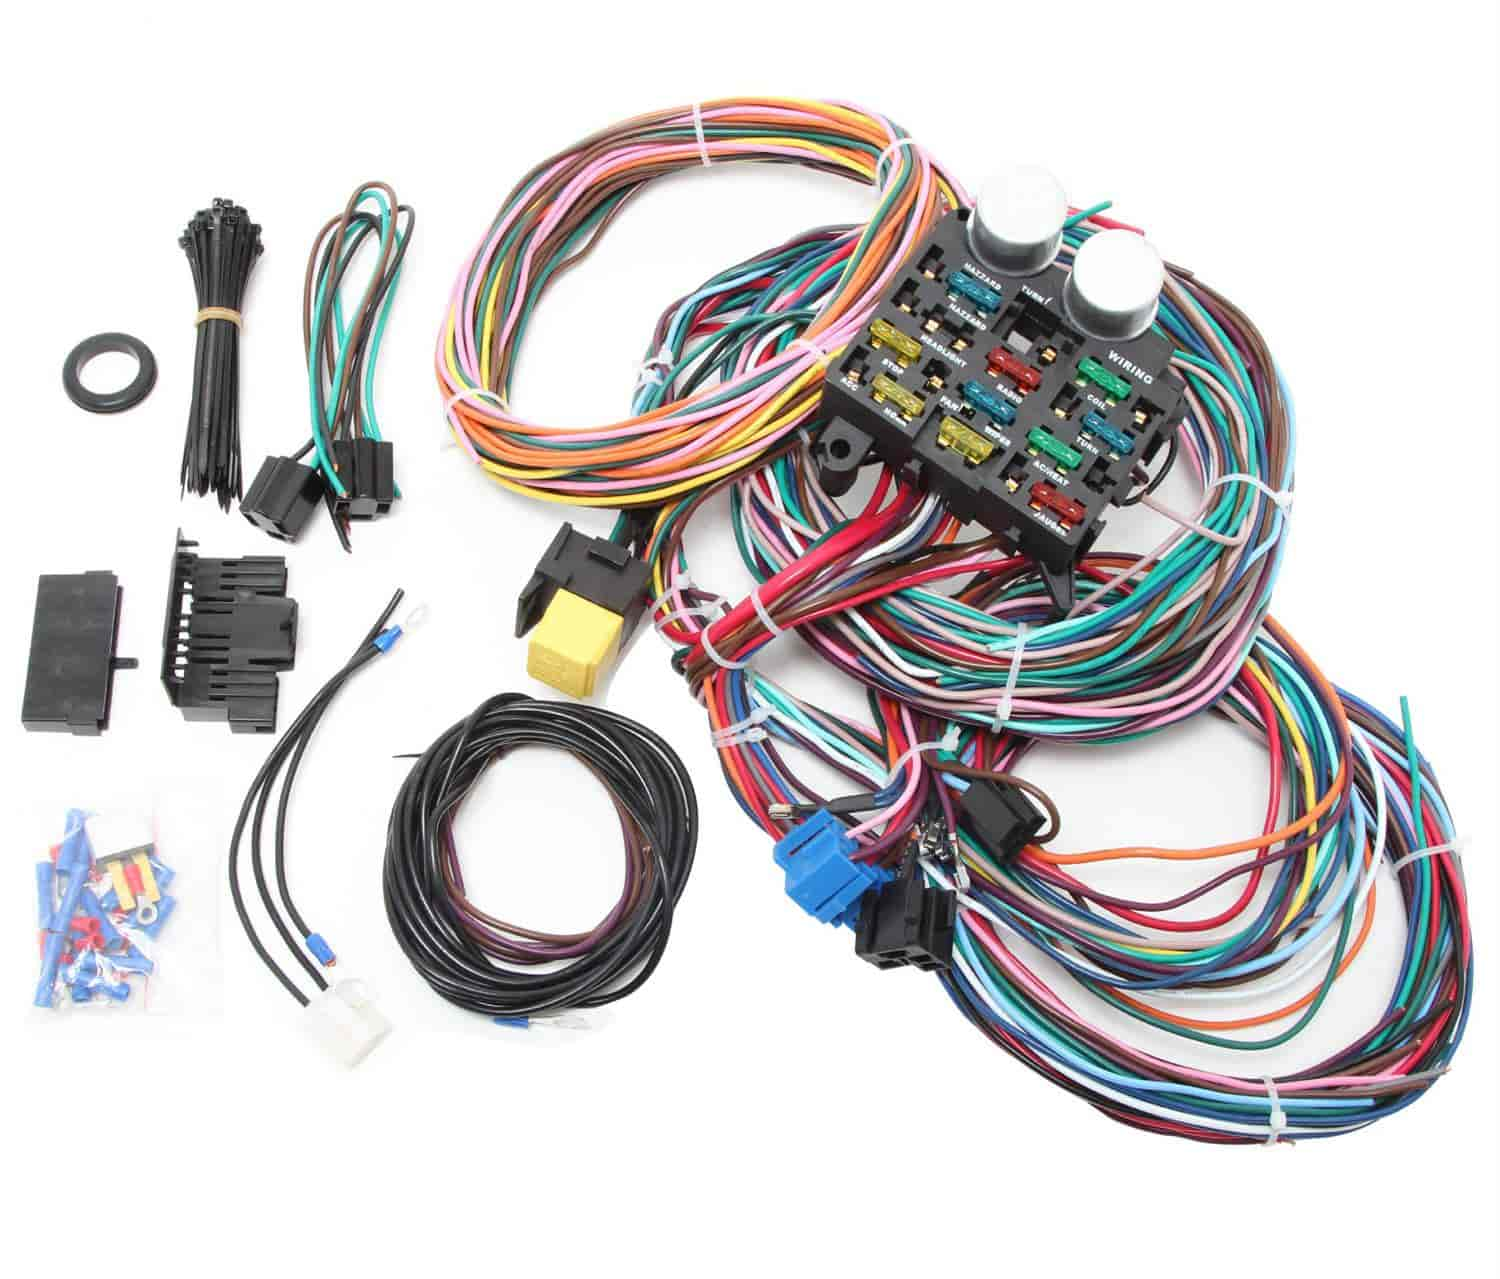 707 r1002x rpc r1002x universal 12 circuit wire harness kit jegs VW Wiring Harness Kits at aneh.co